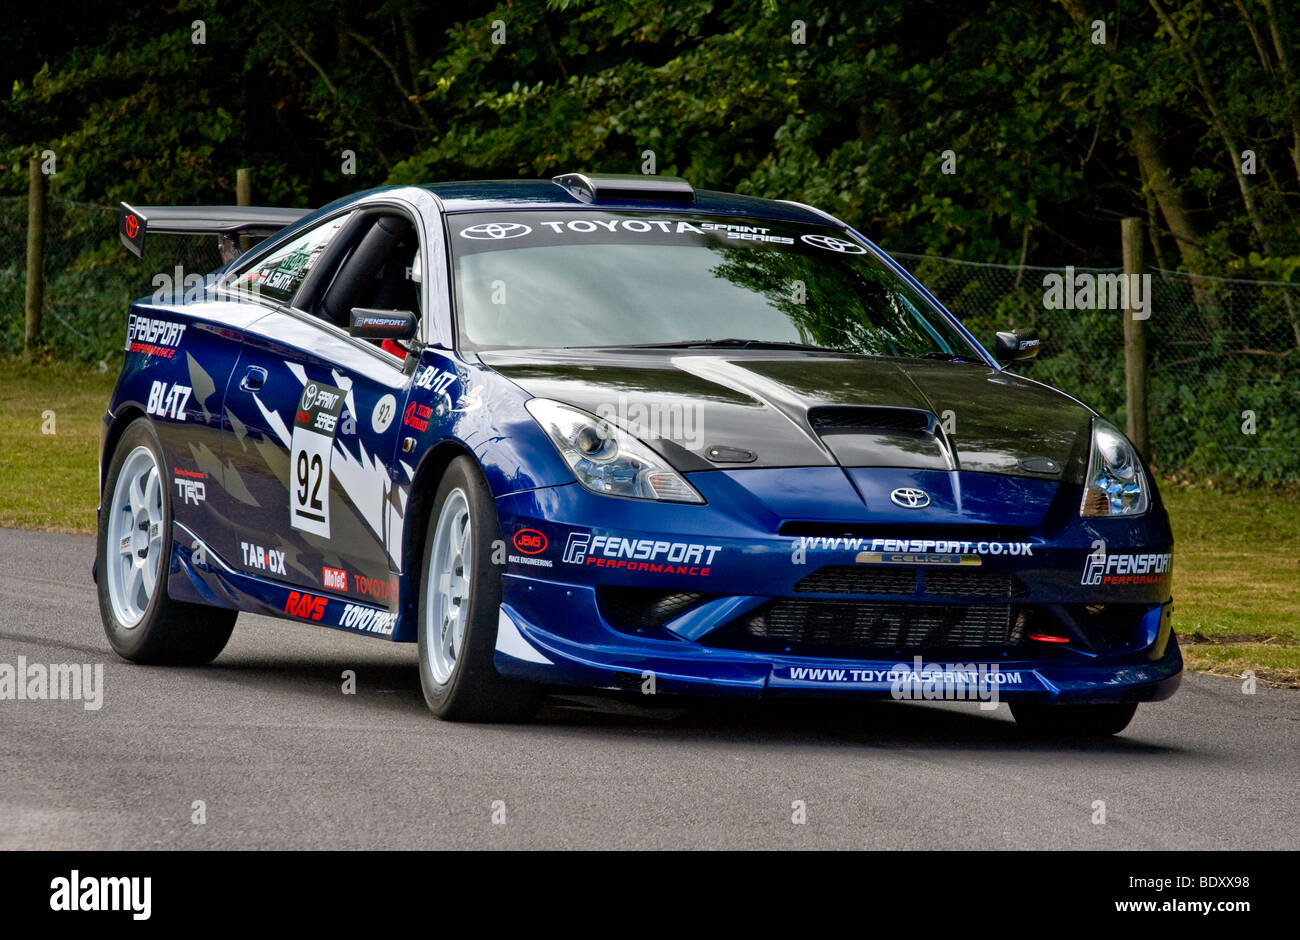 2001 Toyota Celica, 4wd, 576bhp drag racing saloon with driver ...